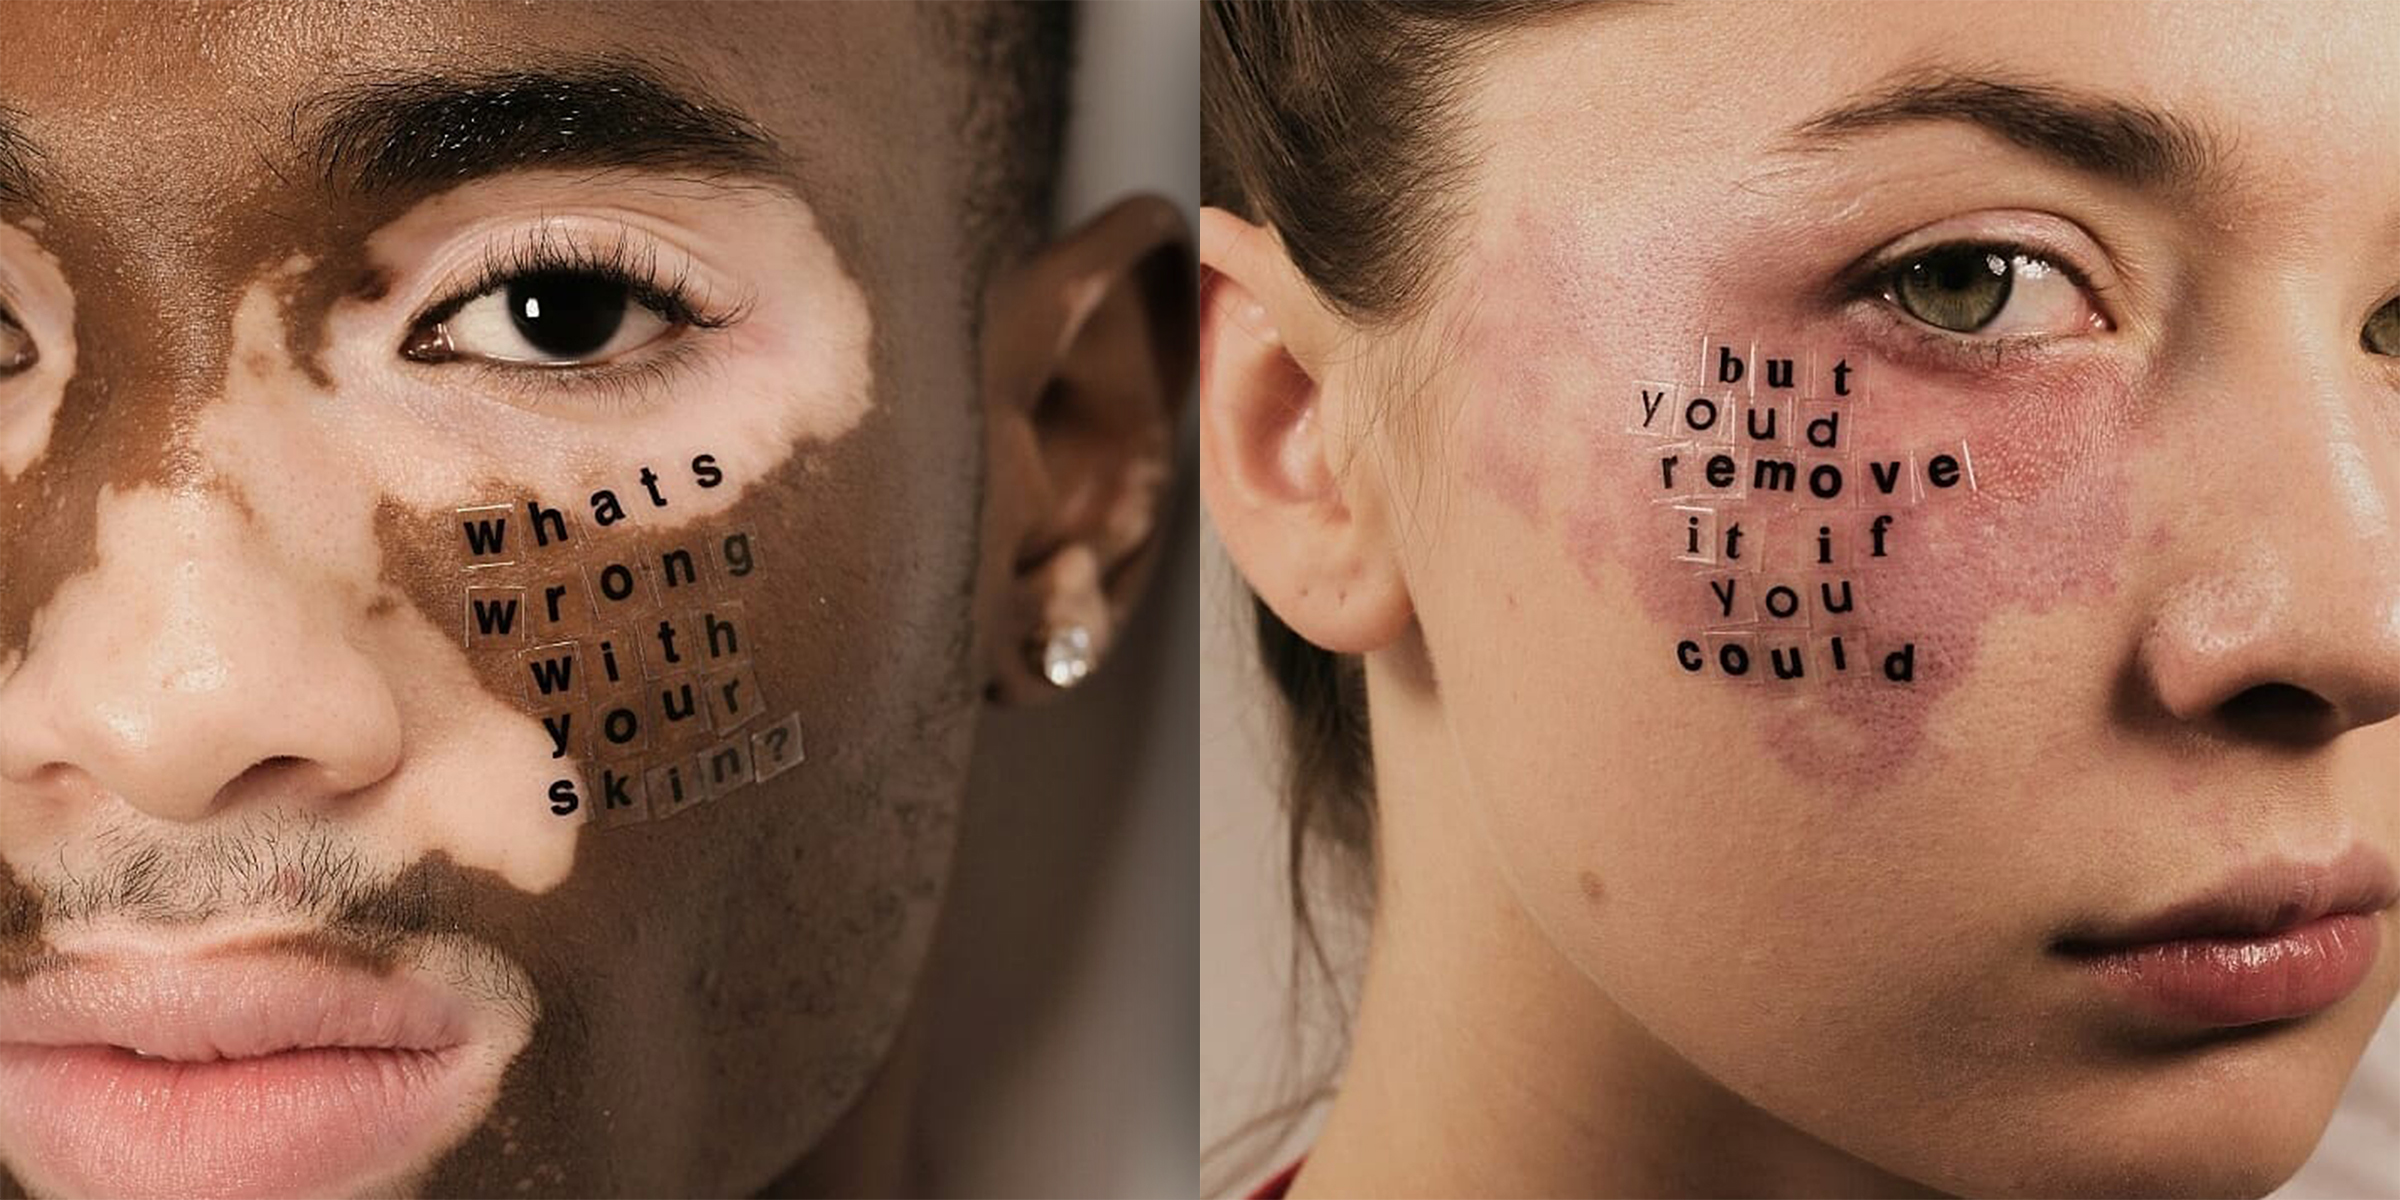 Models With Skin Conditions Answer Hurtful Questions In Powerful Portrait Series